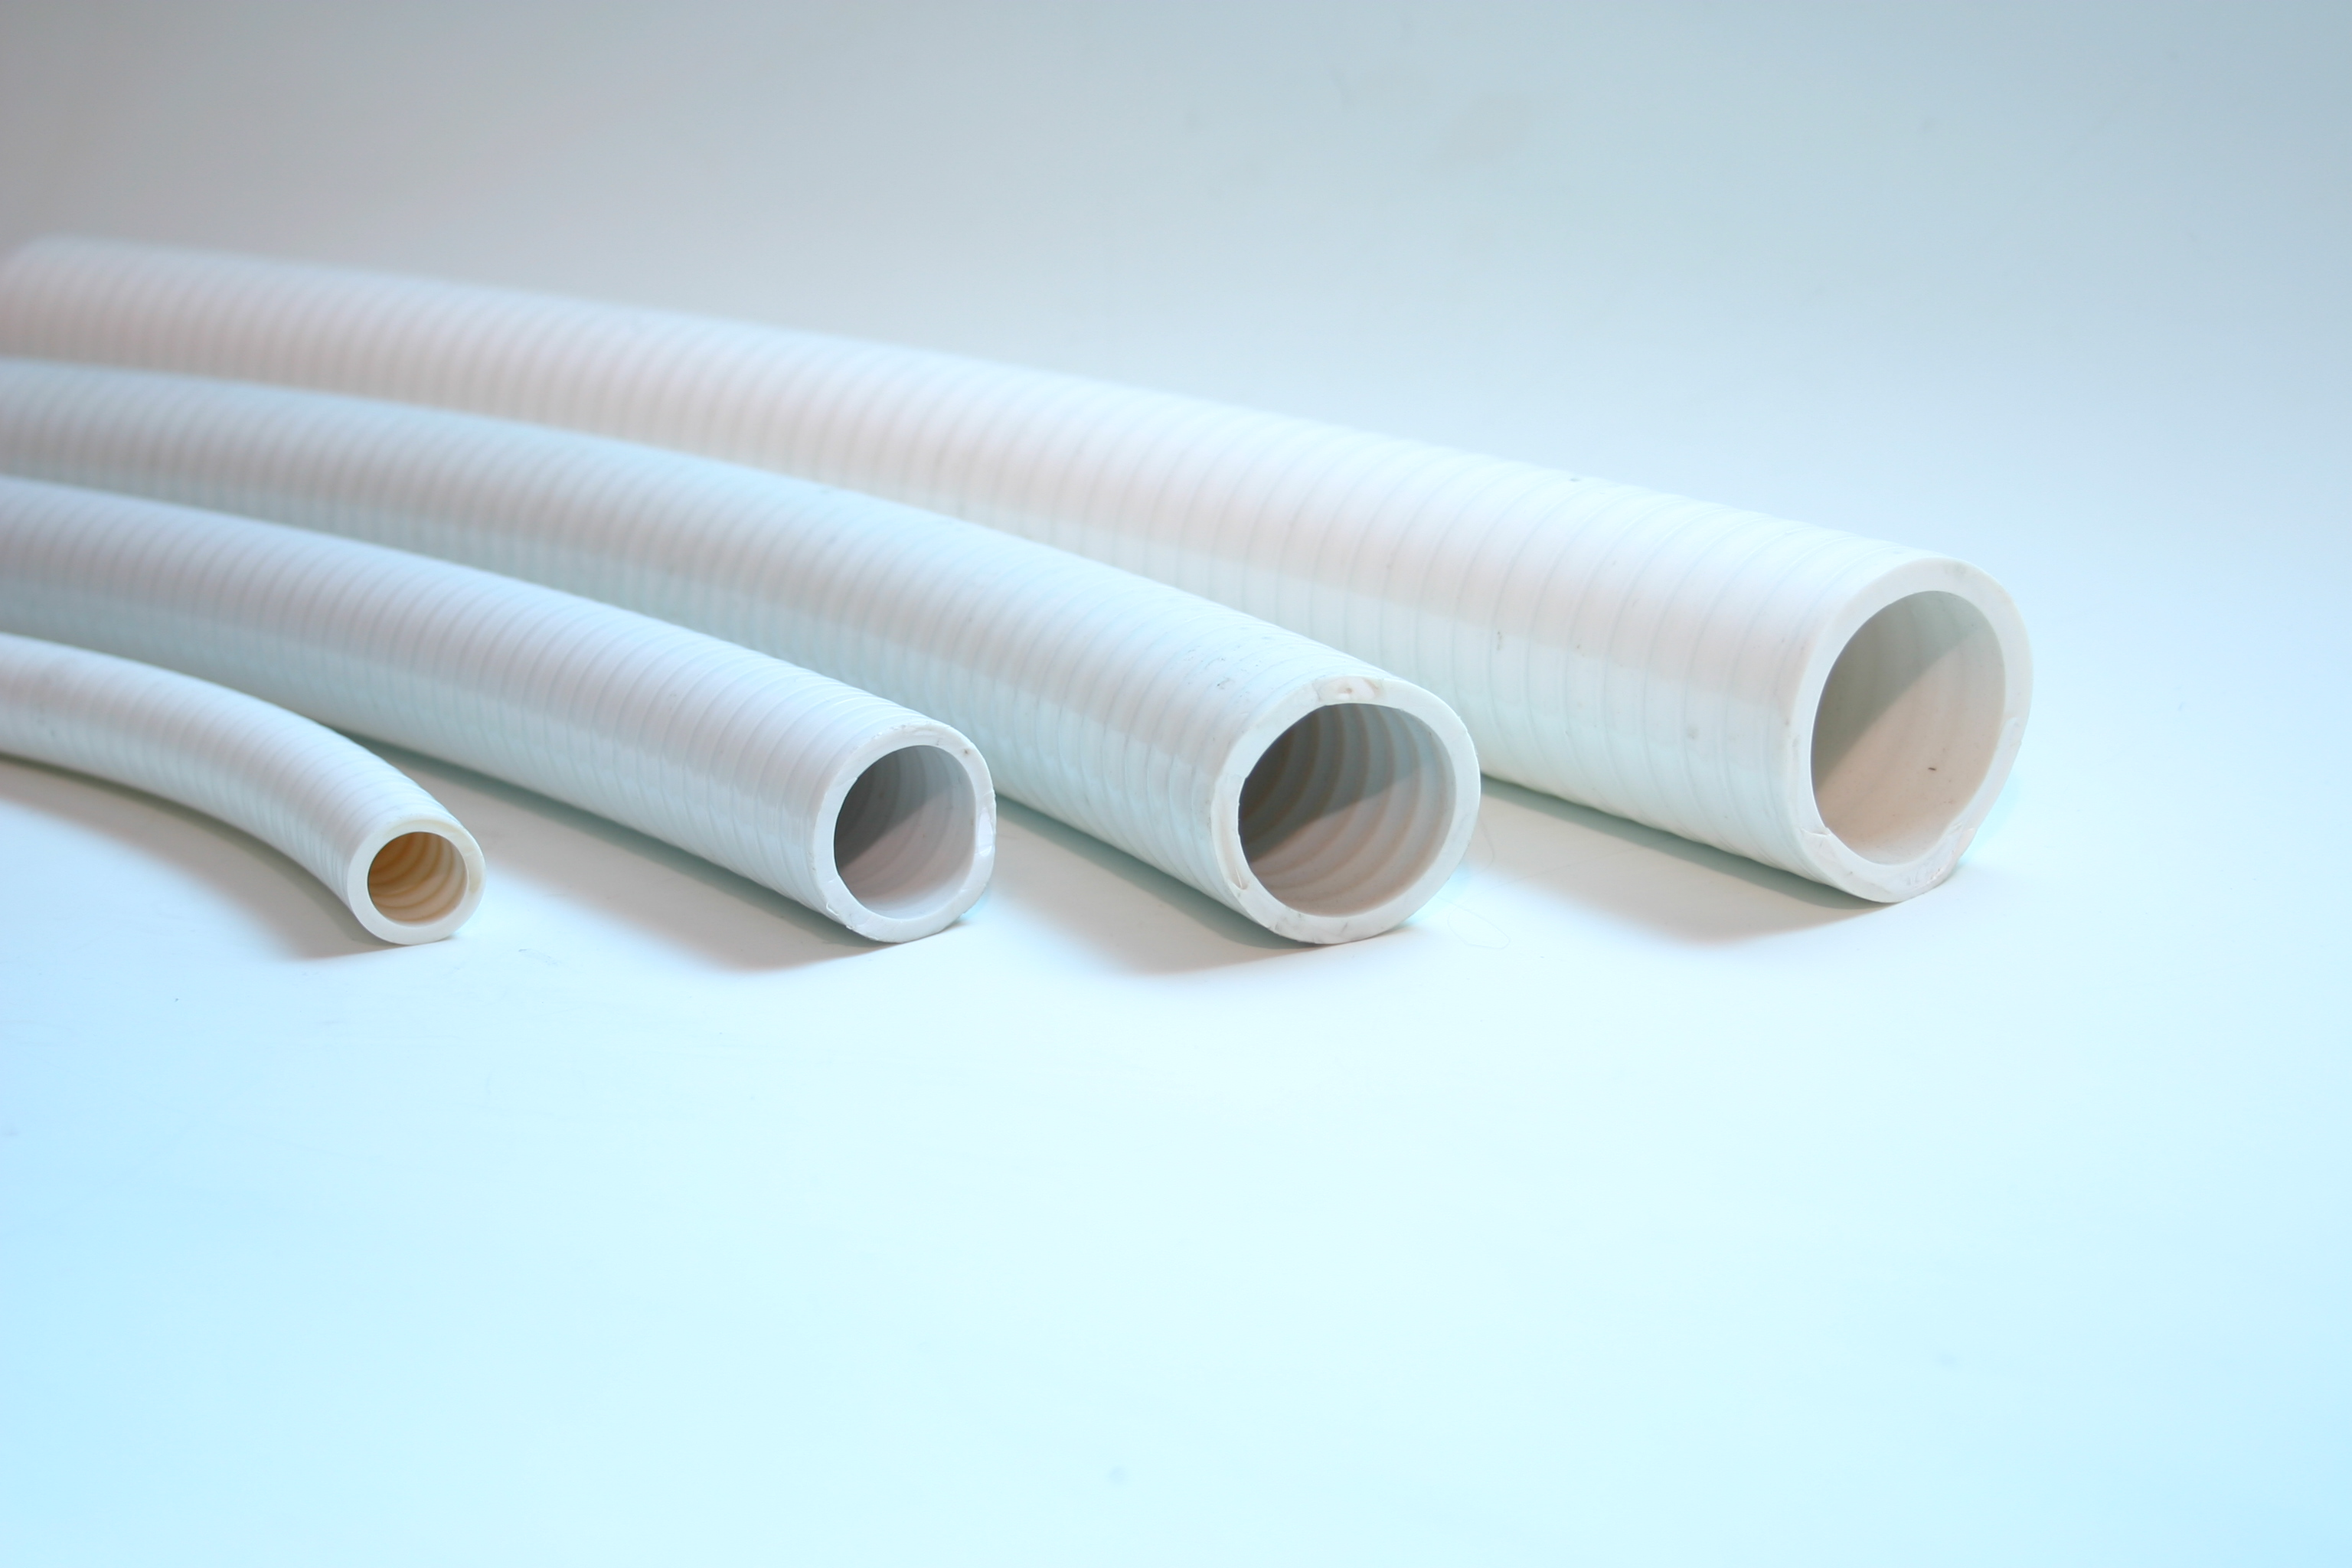 Super PVC flexible hose / pipe 50 mm , length 2,0 m for whirlpools AX97